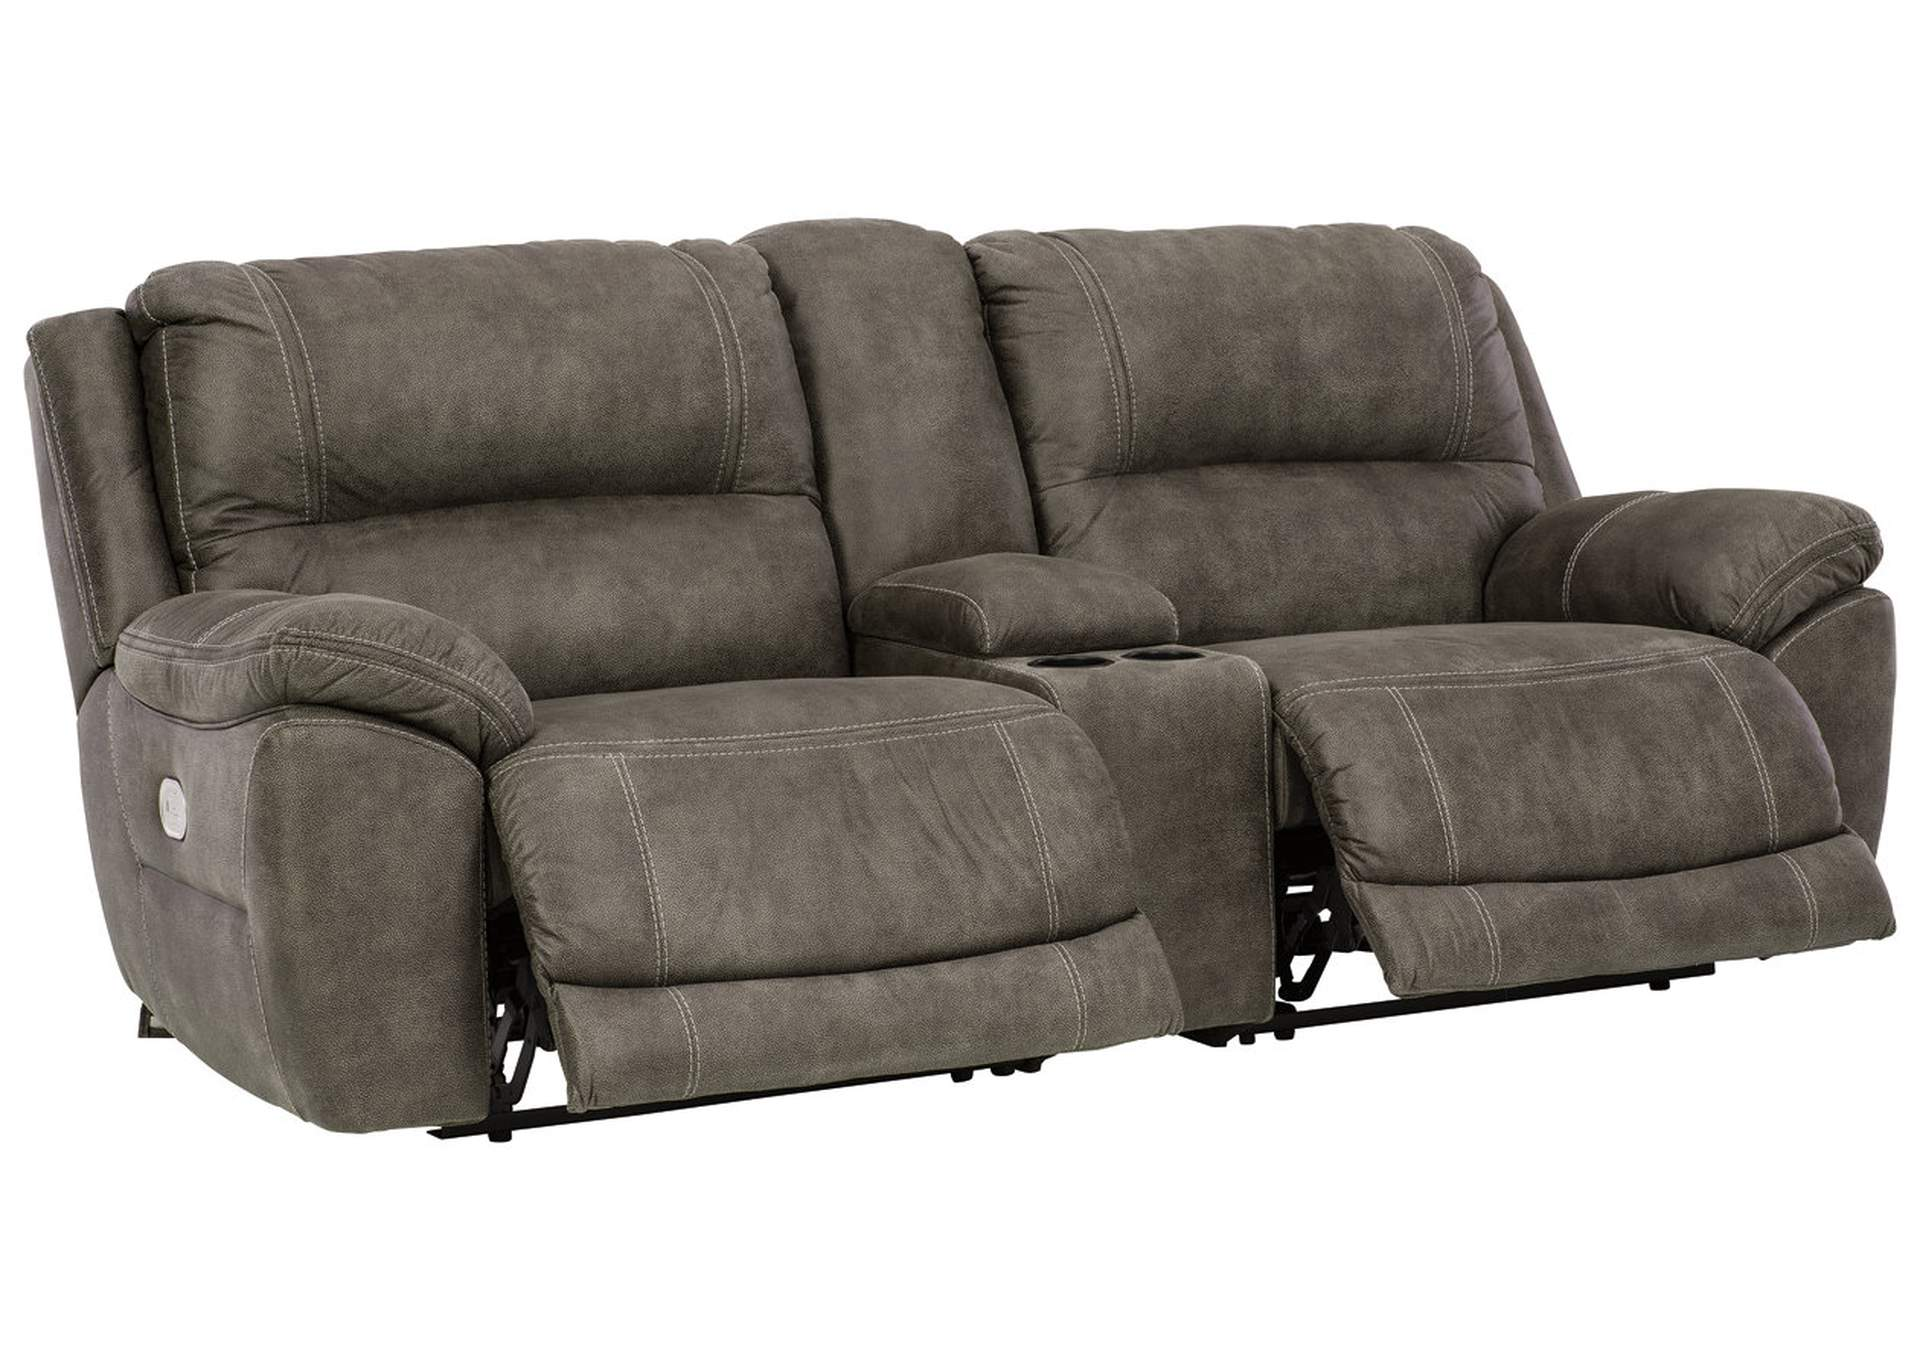 Cranedall 3-Piece Power Reclining Sectional,Signature Design By Ashley